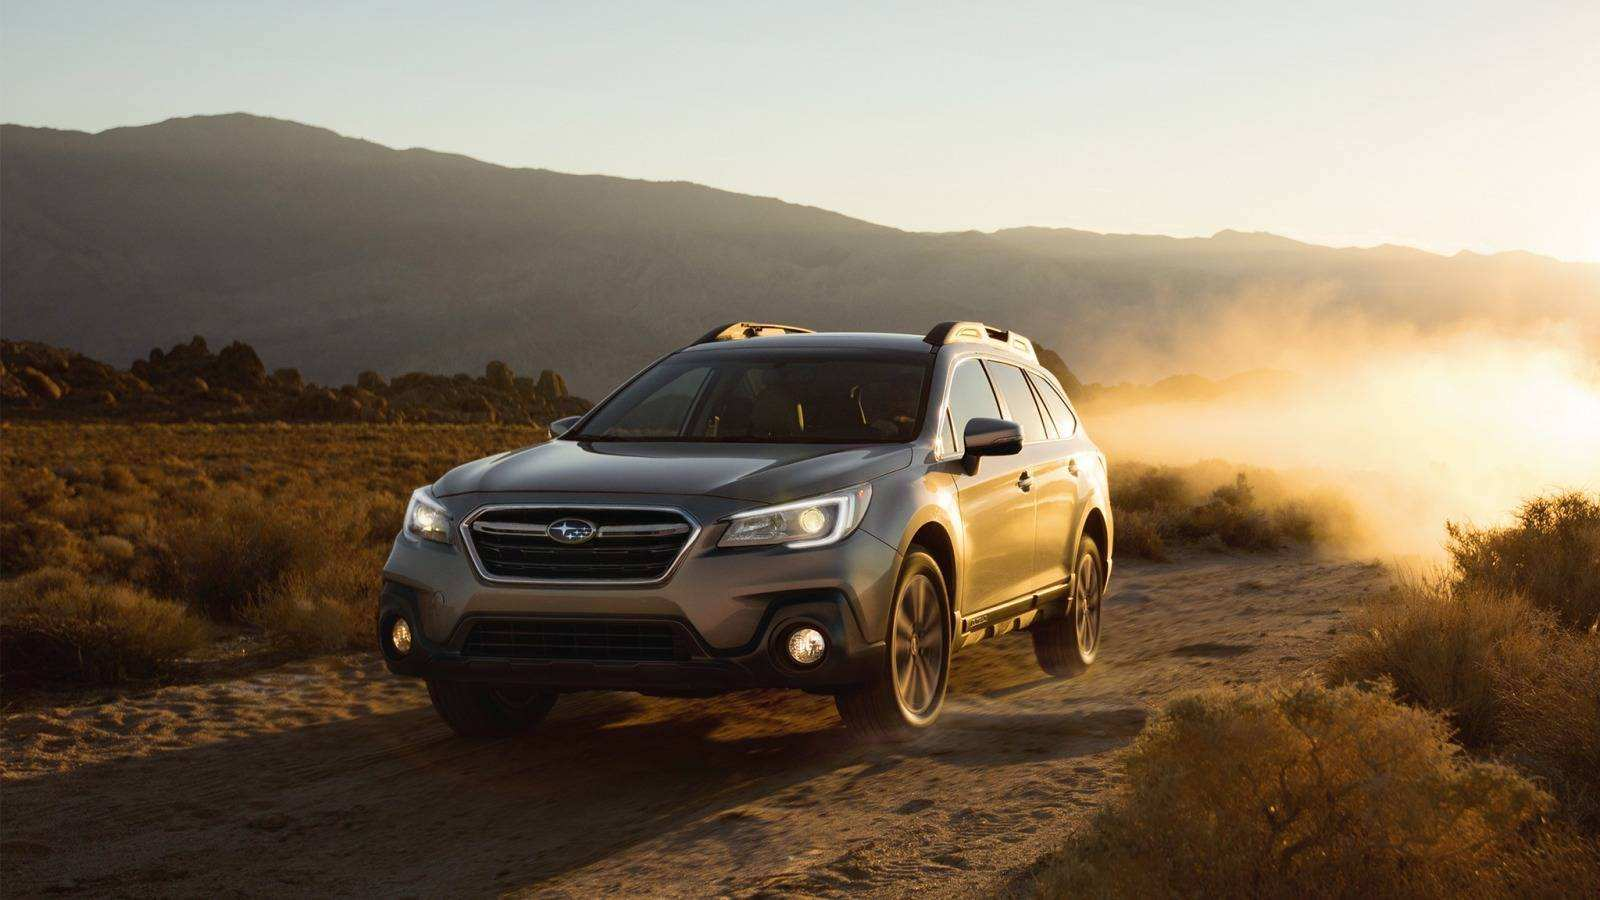 95 New Best Subaru 2019 Outback Touring Price Redesign for Best Subaru 2019 Outback Touring Price